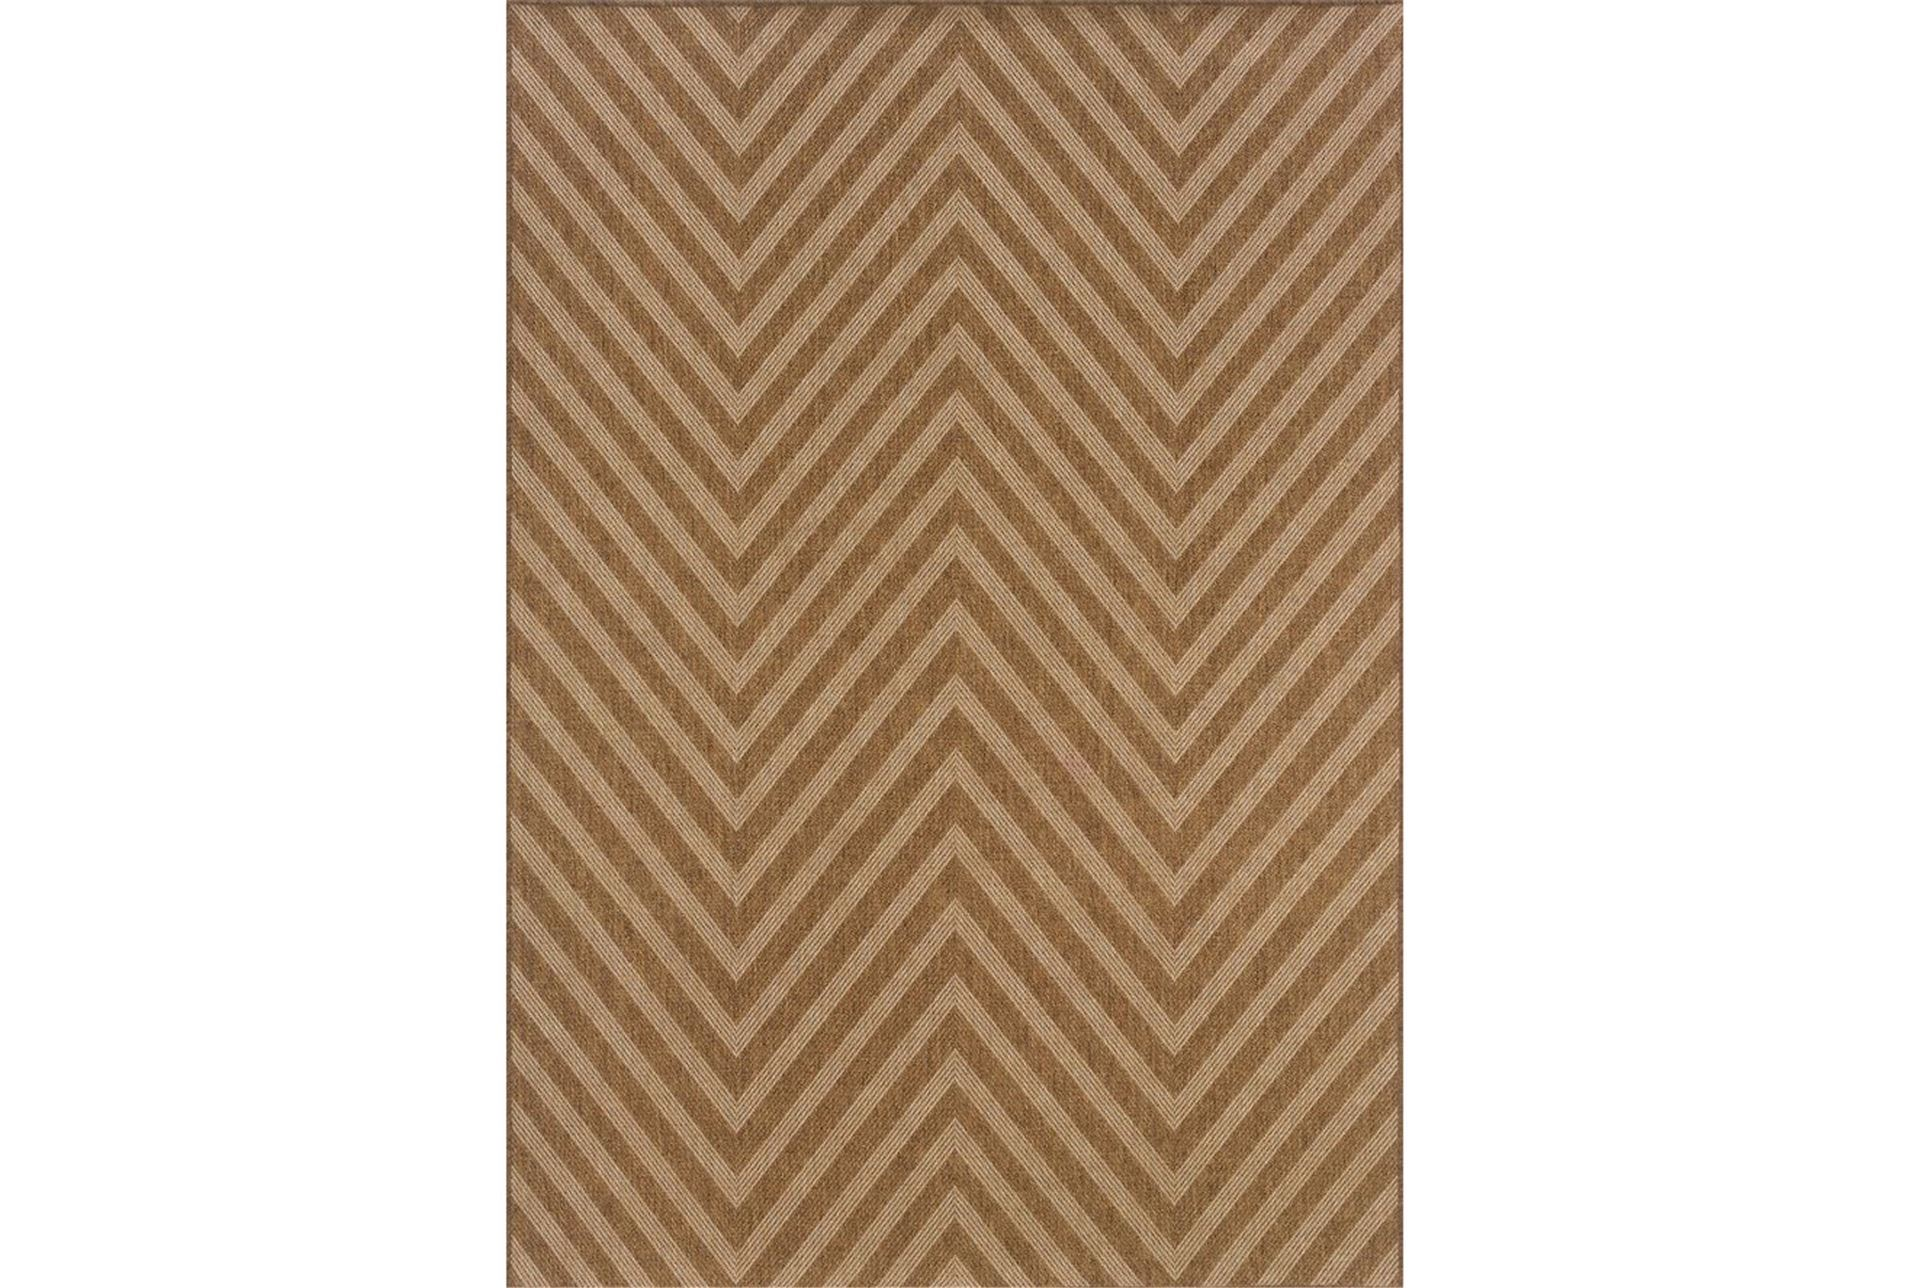 94x130 outdoor rug ryker chevron living spaces for Living spaces rugs